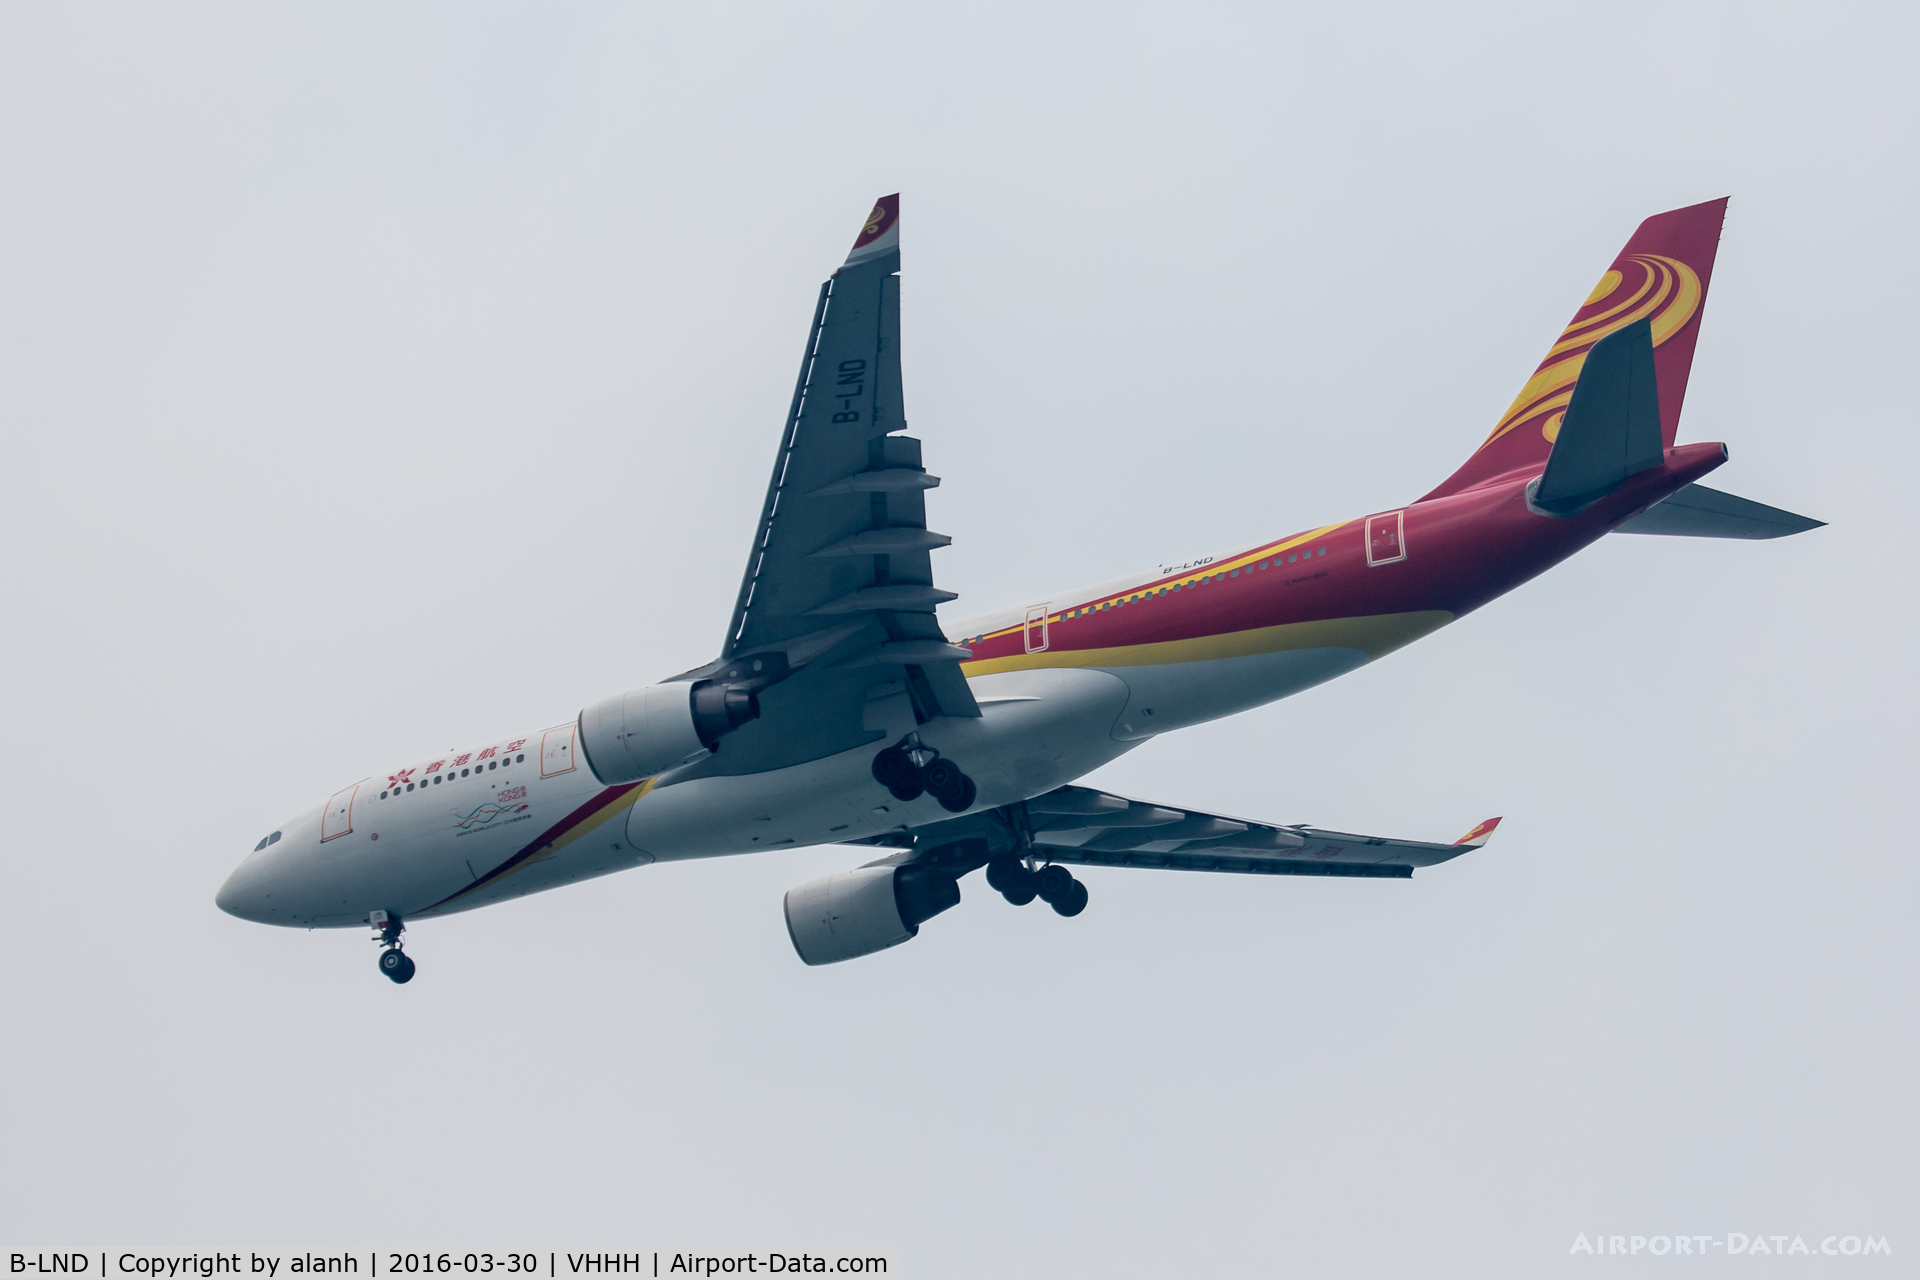 B-LND, 2010 Airbus A330-223 C/N 1042, On finals for Hong Kong, inbound from Beijing Capital Int'l